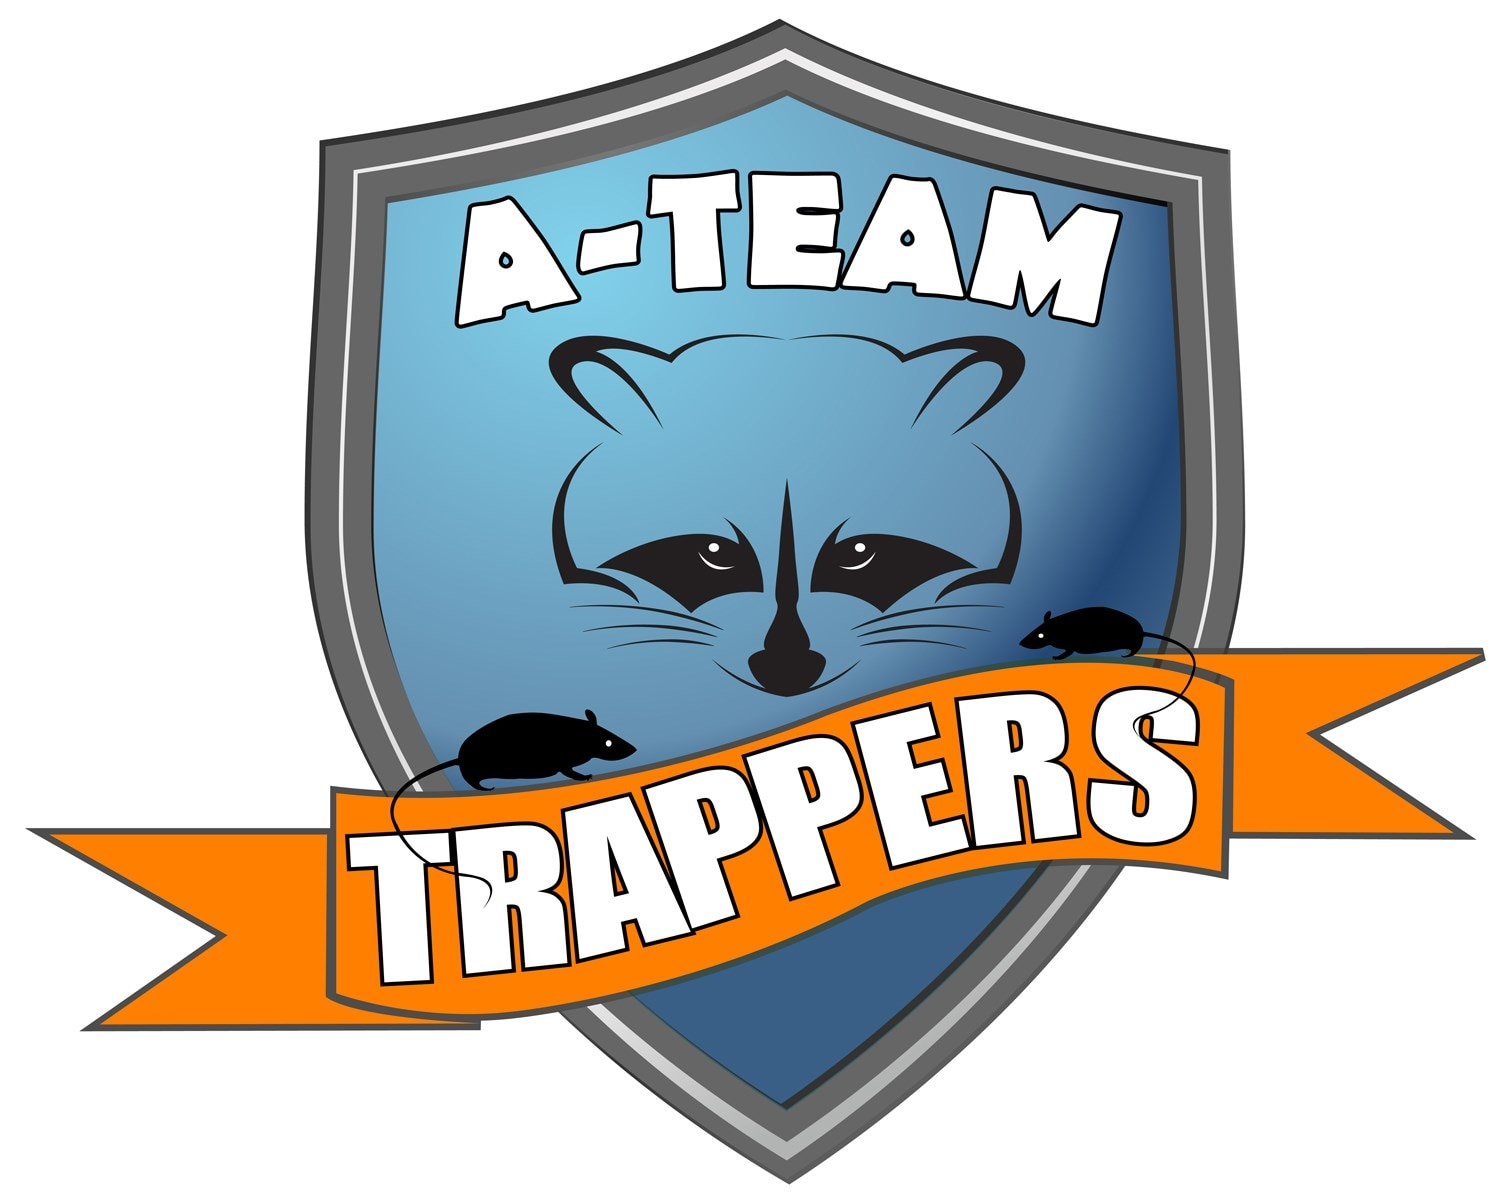 A-Team Trappers logo